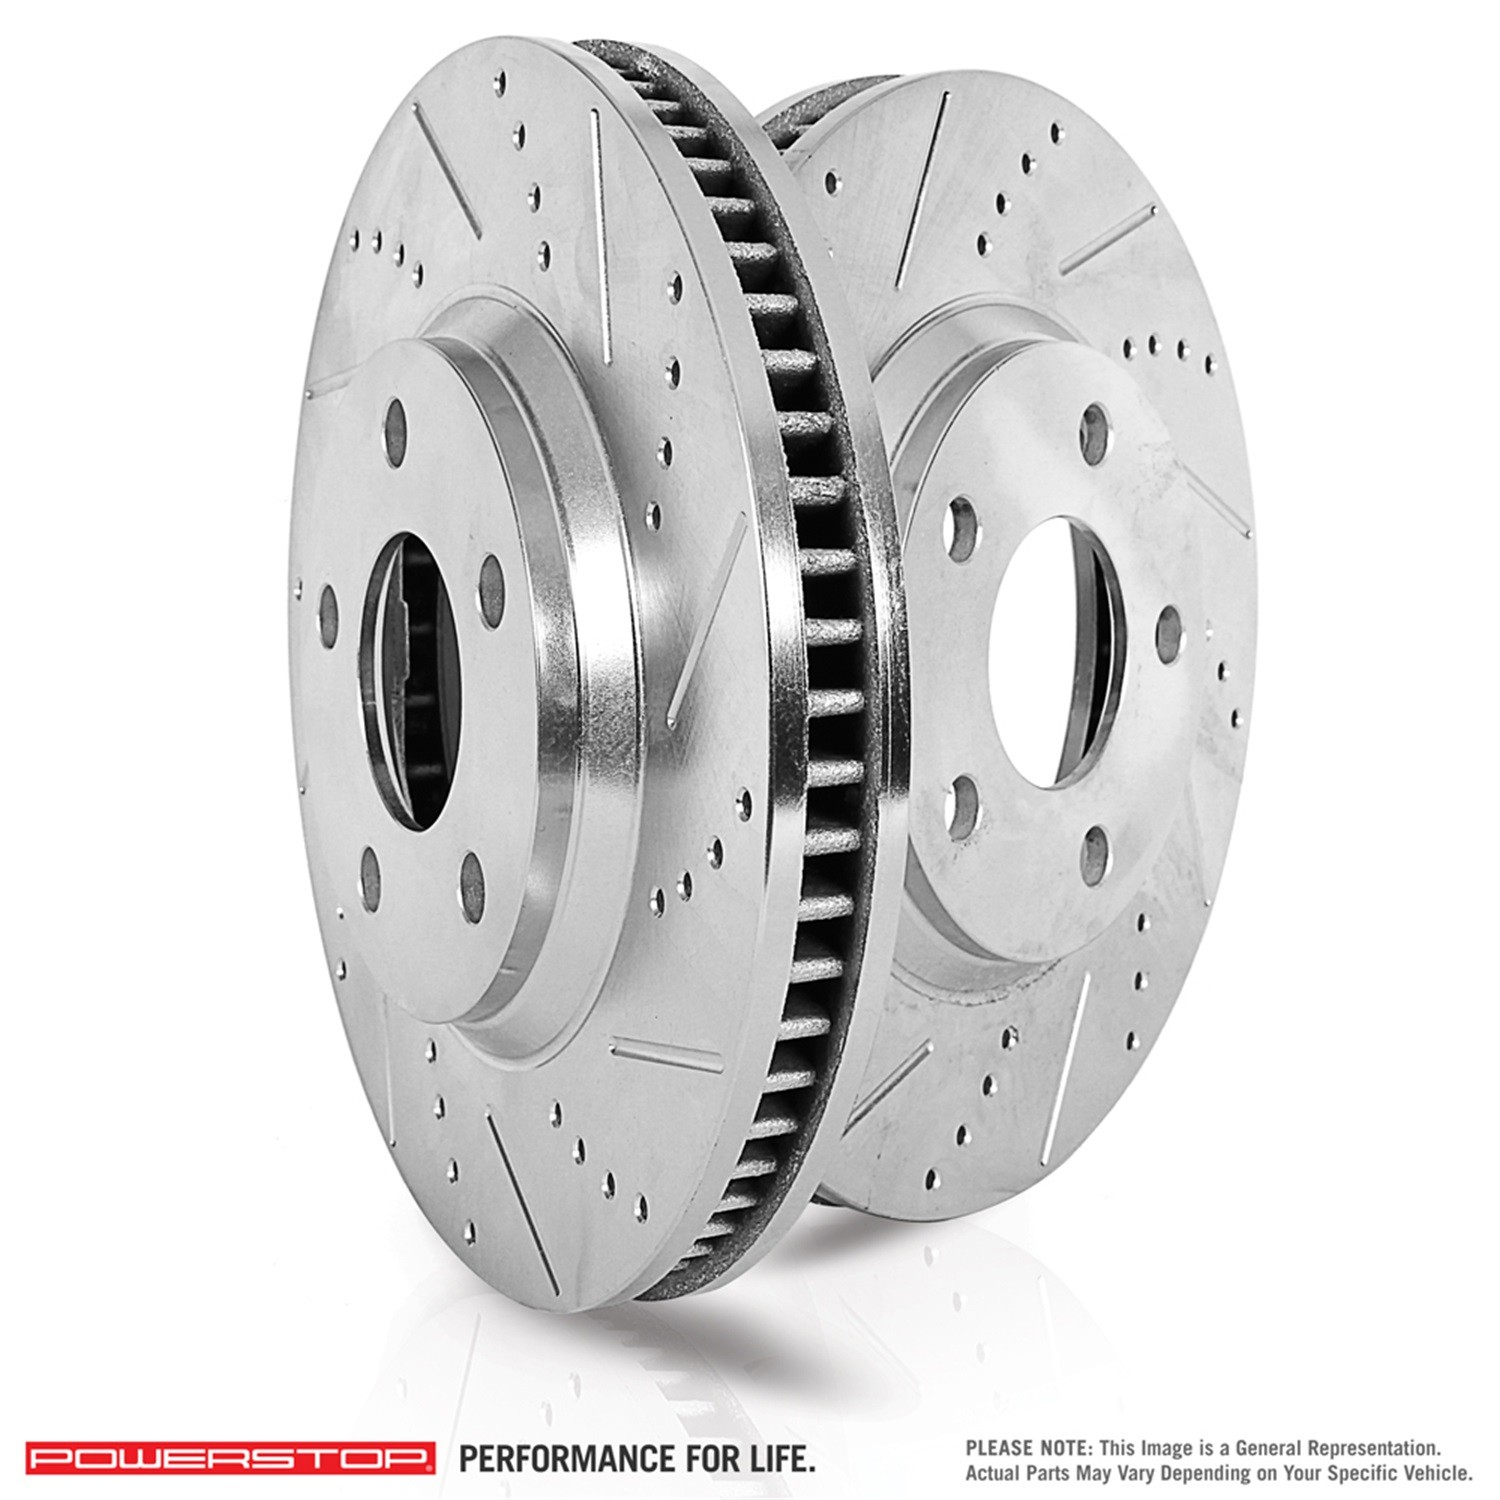 POWER STOP XPR - Extreme Performance Drilled & Slotted Brake Rotors (Front) - PWX JBR522XPR